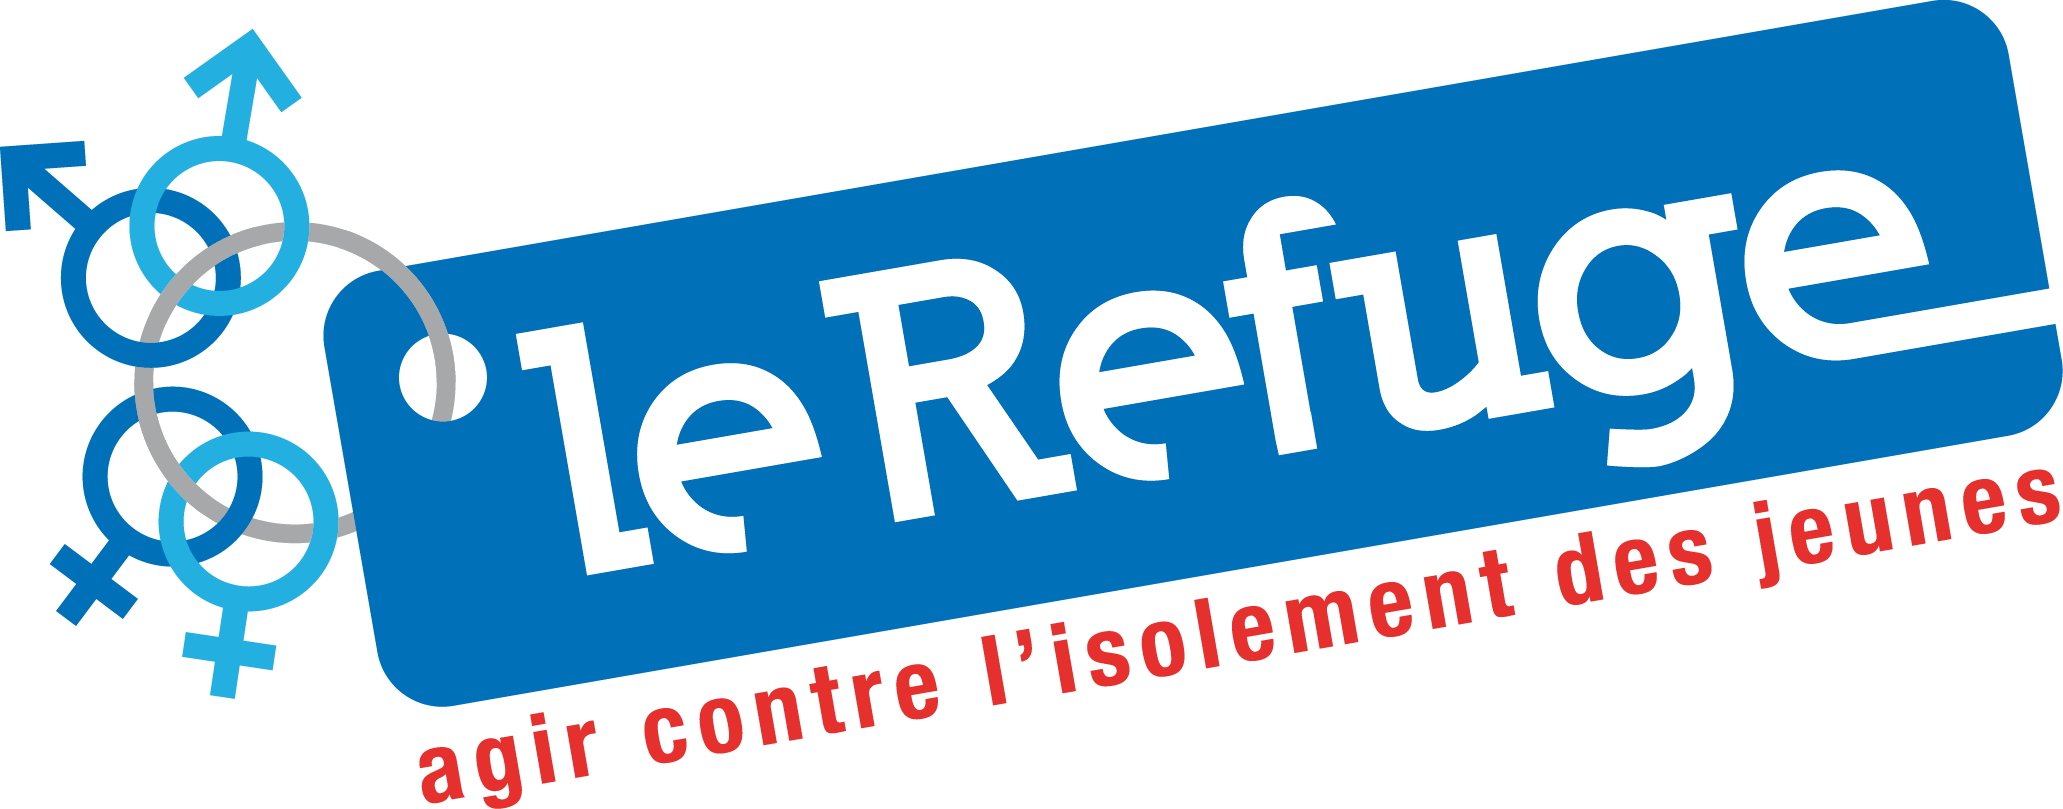 logo_hd-le_refuge.png (127 KB)